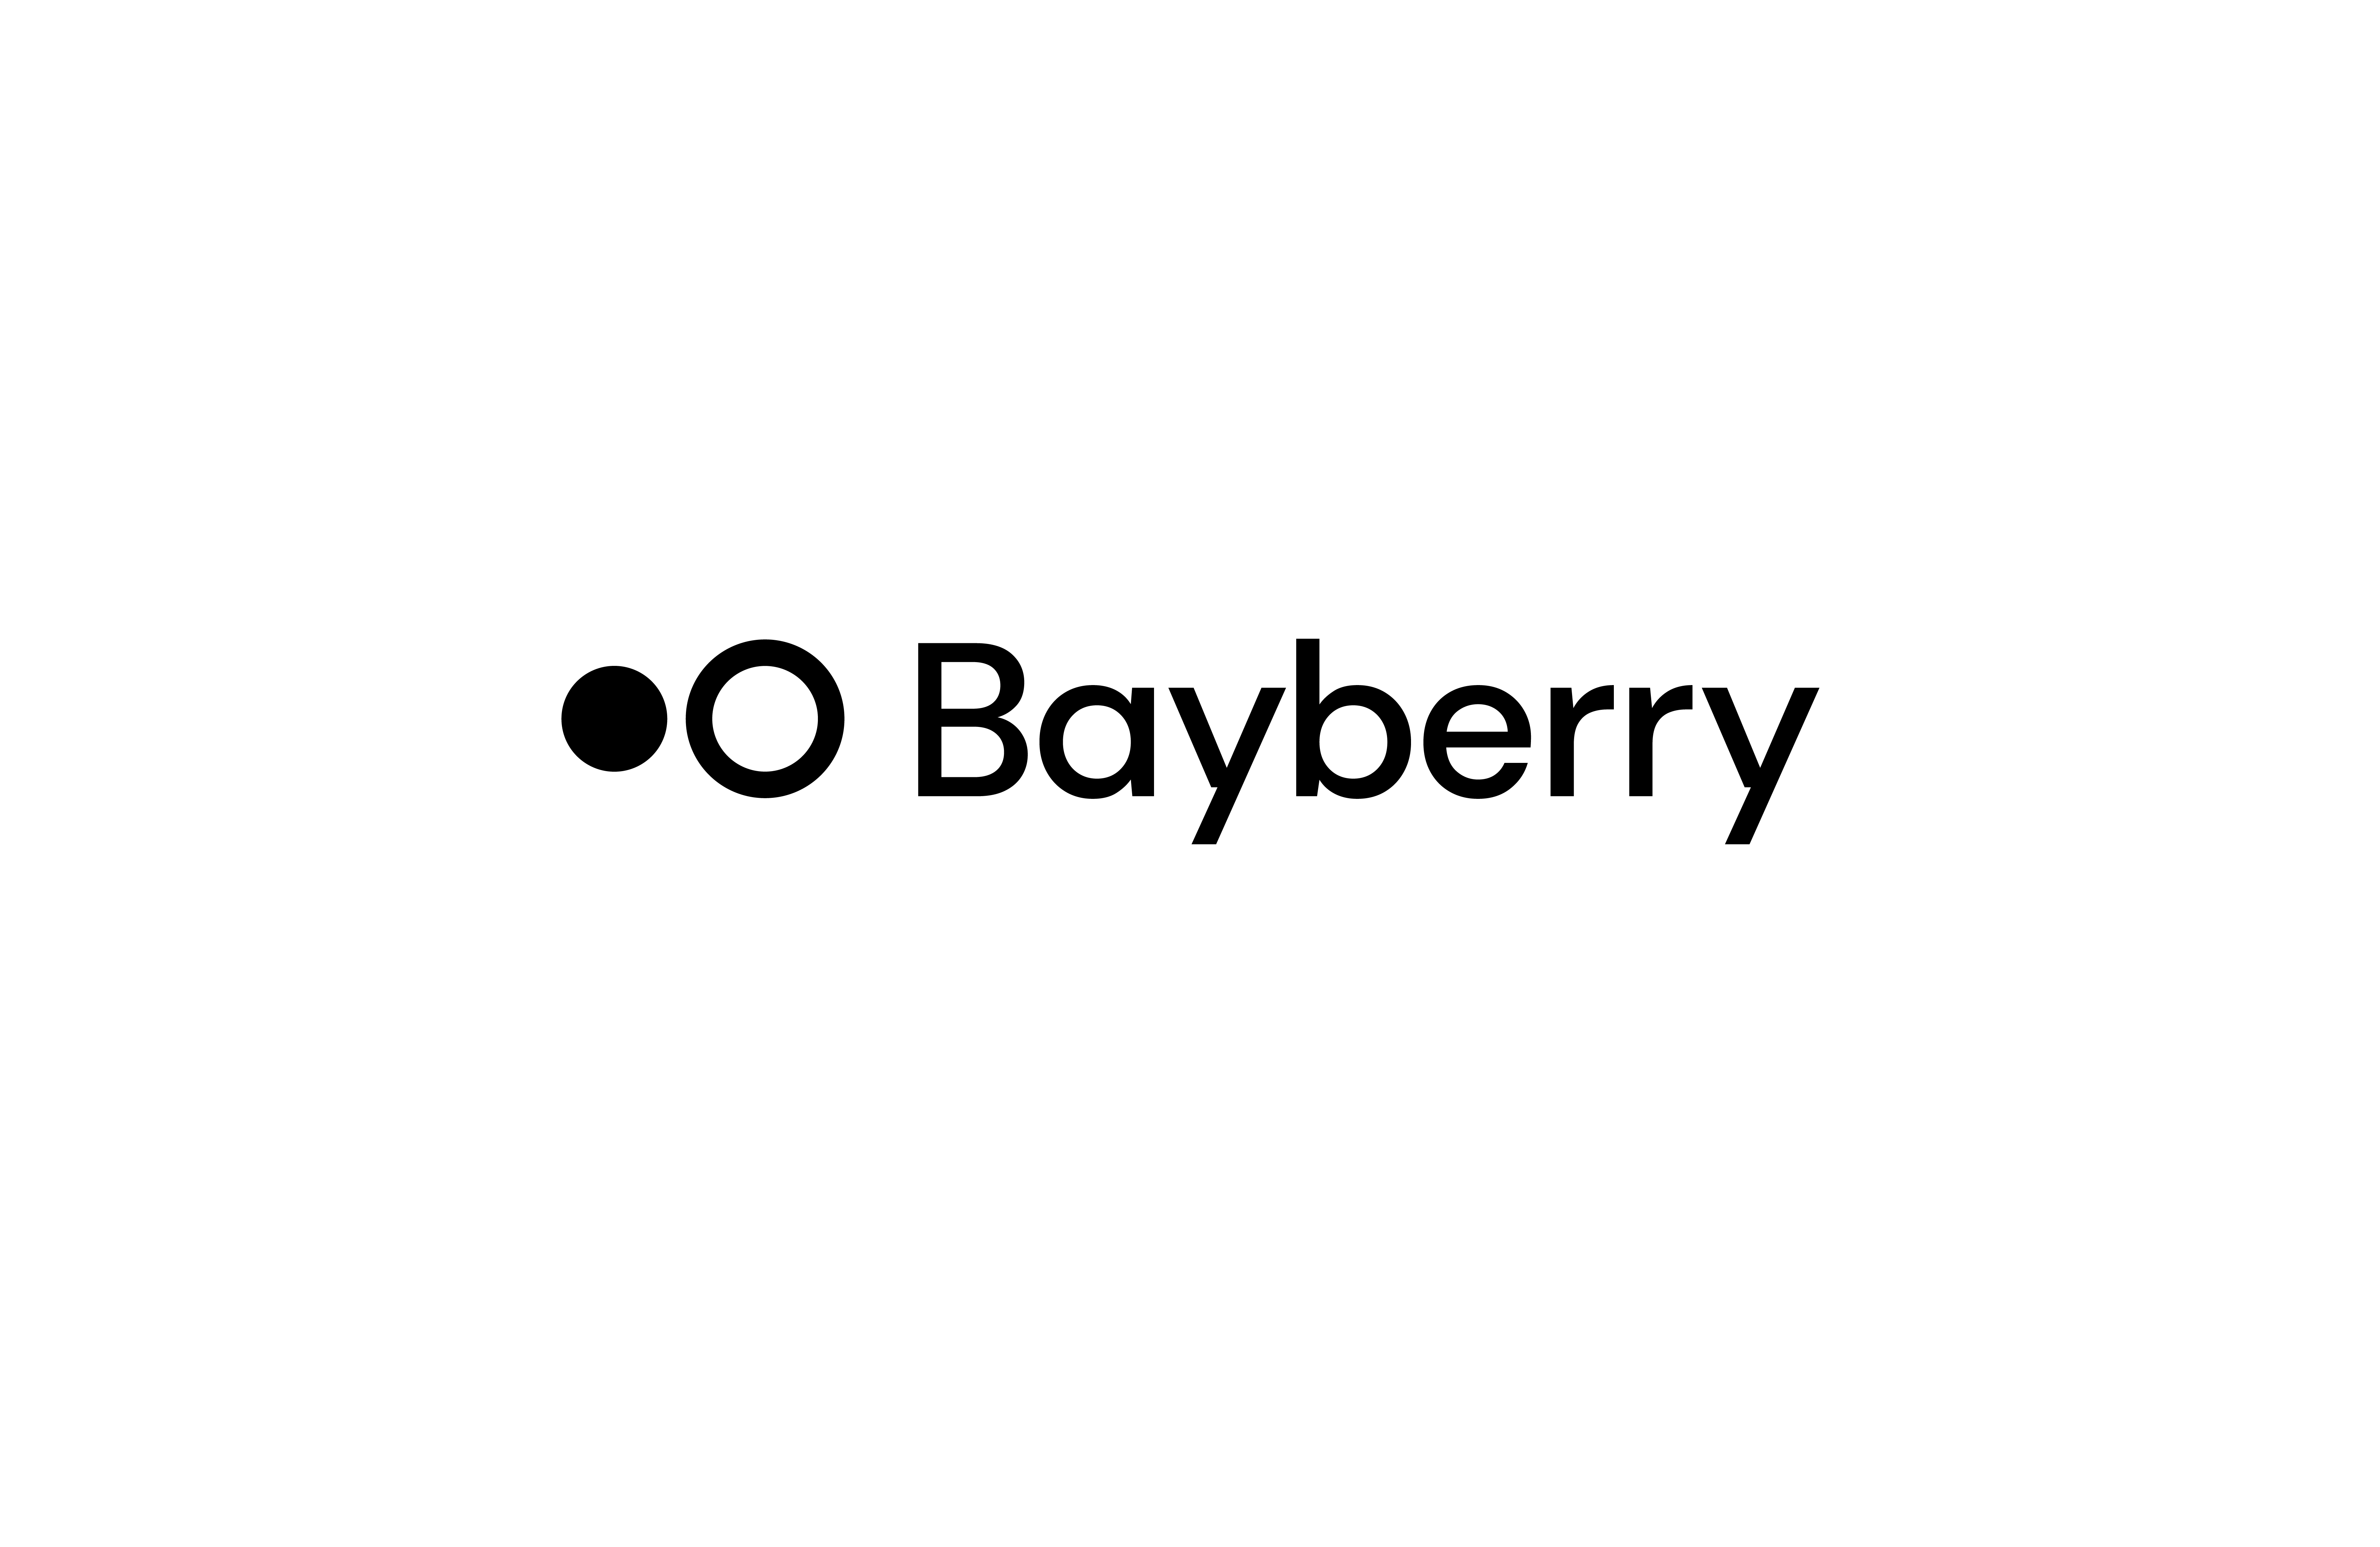 Cover image: Bayberry